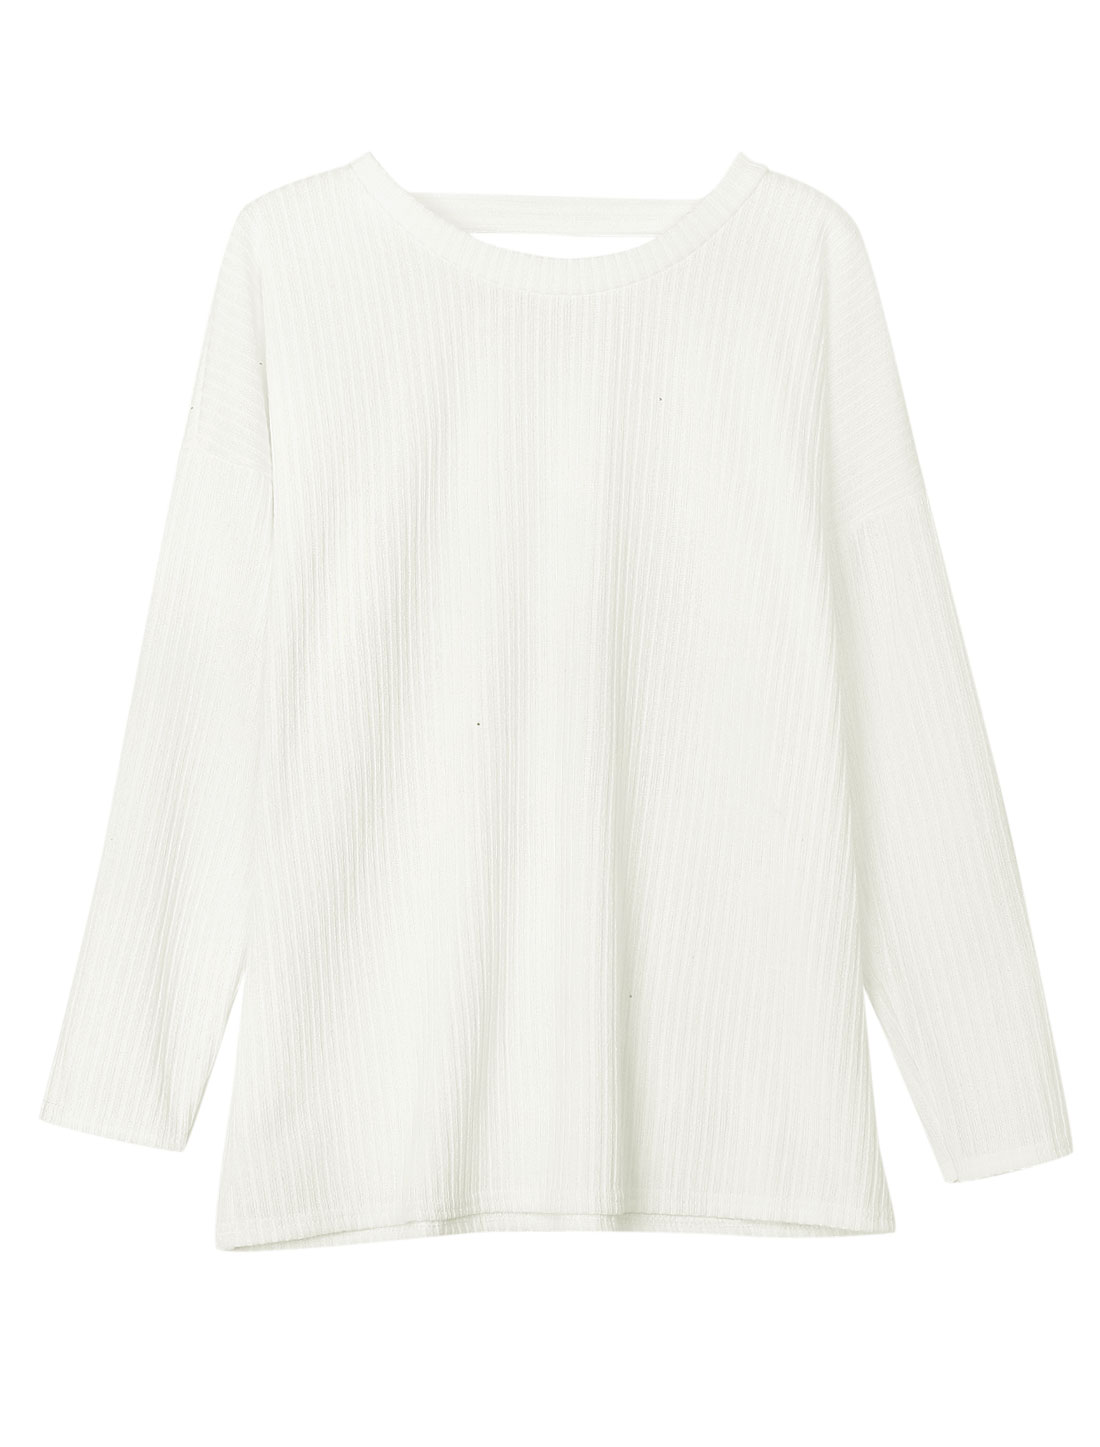 Ladies Dolman Sleeves Pullover White Tunic Knit Shirt S